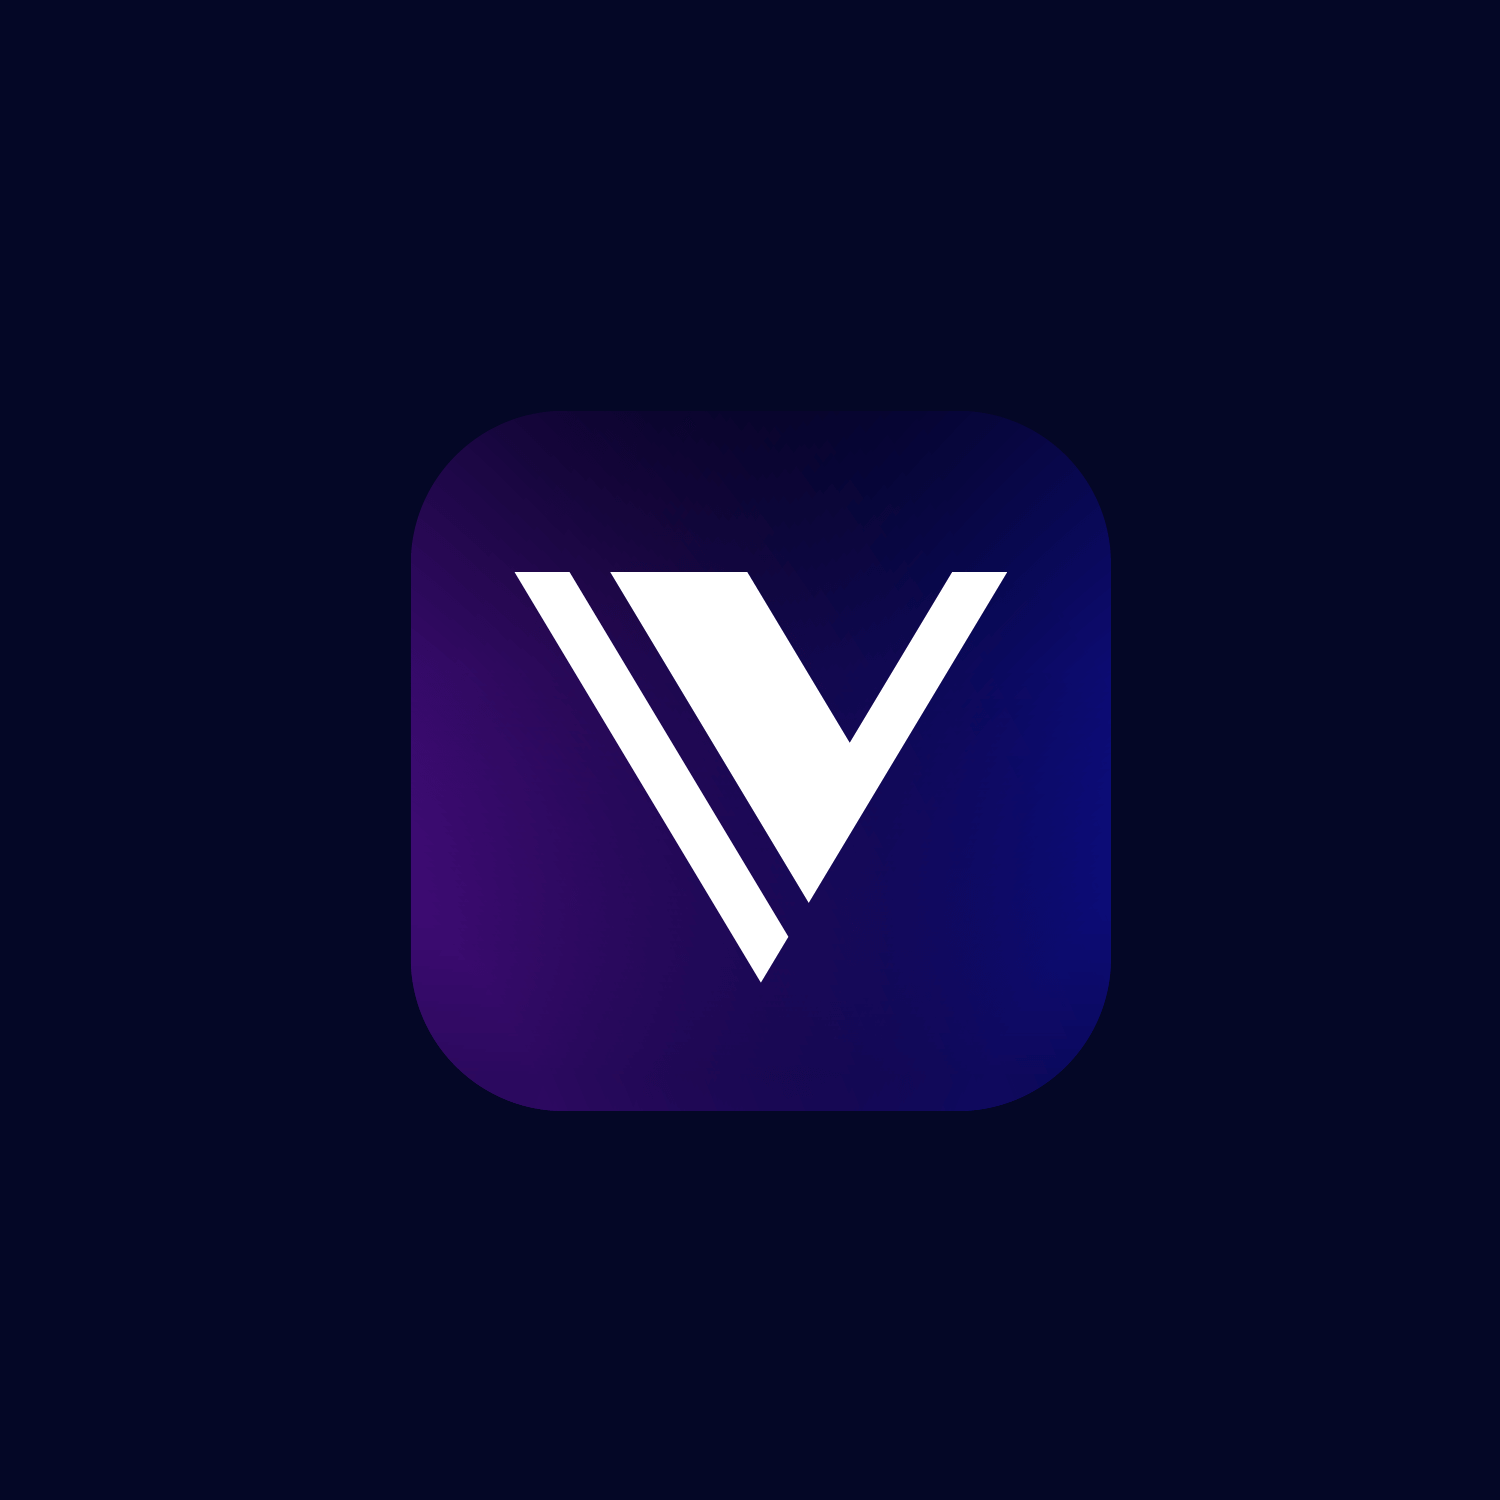 White V monogram on a deep purple and blue gradient app icon with a navy background